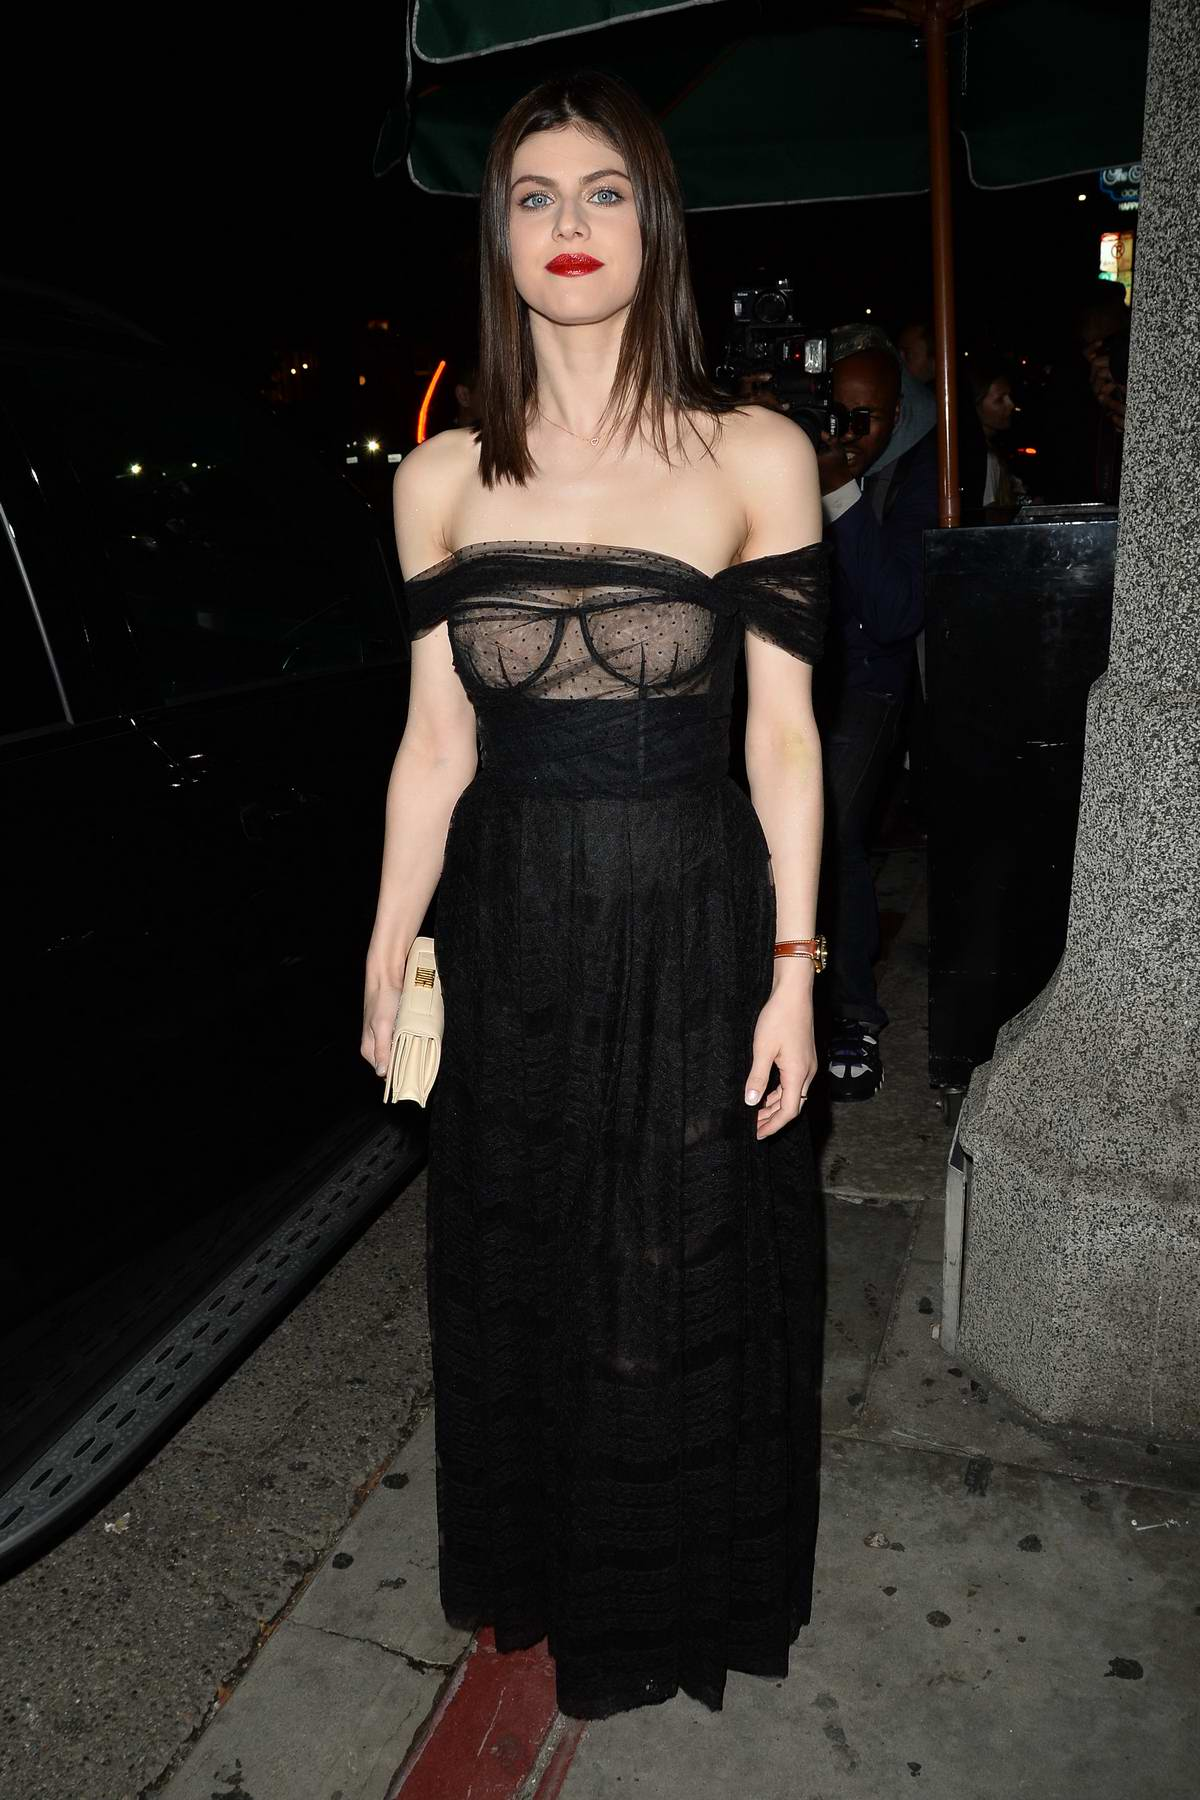 Alexandra Daddario attends Dior Addict Lacquer Pump Launch party at Poppy in West Hollywood, Los Angeles